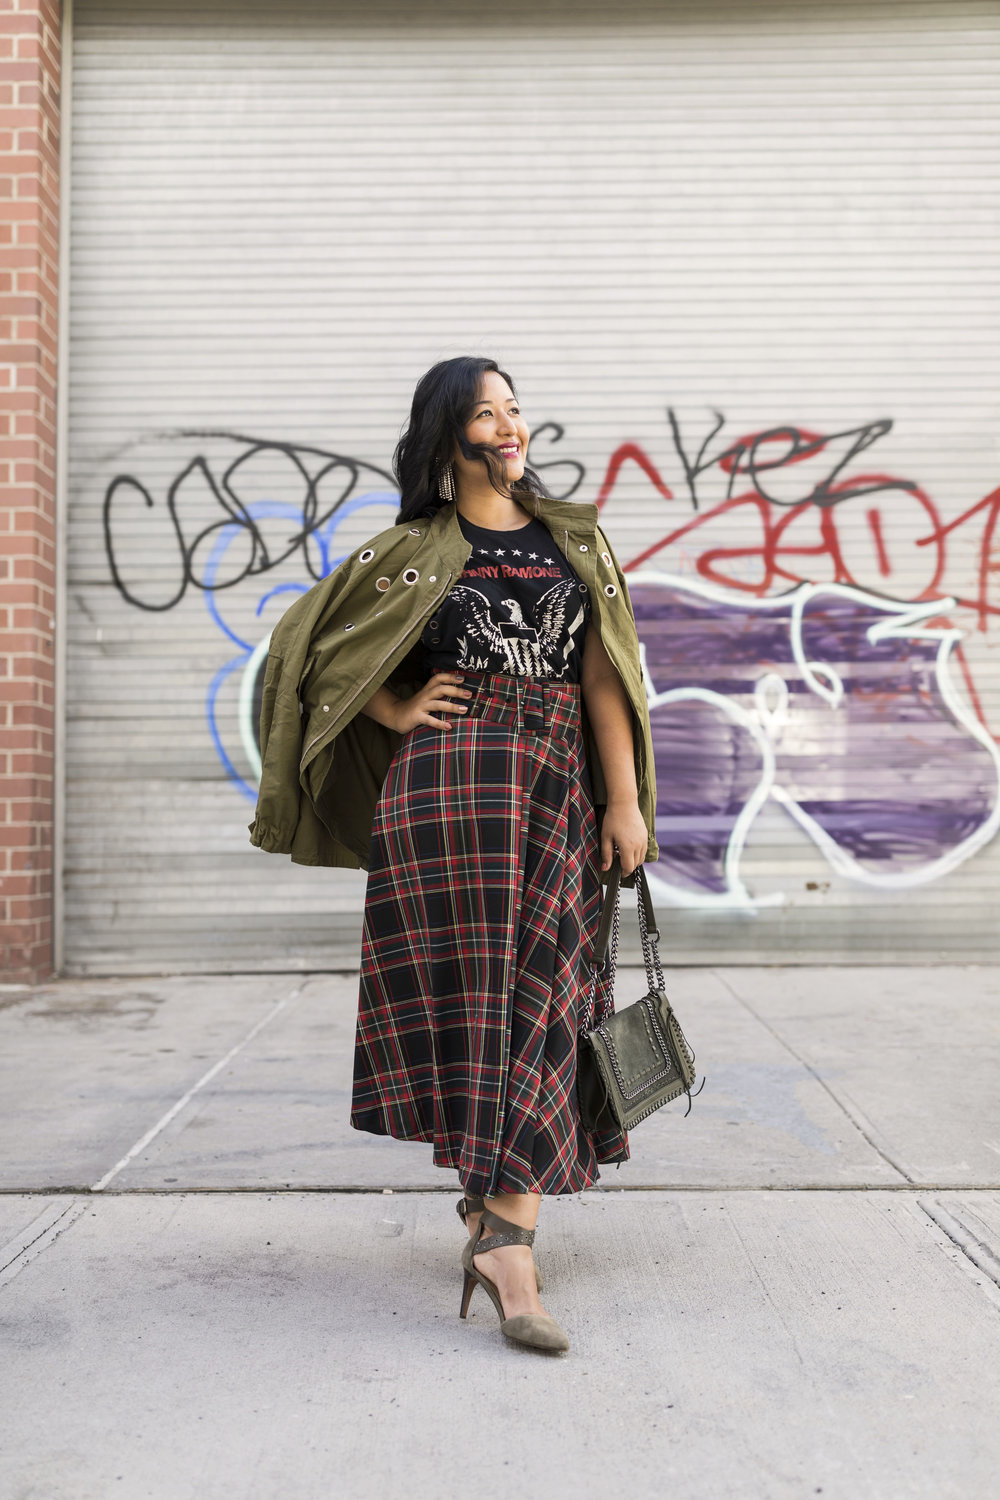 Krity S x Fall Trends x Plaid with a Punk Twist5.jpg